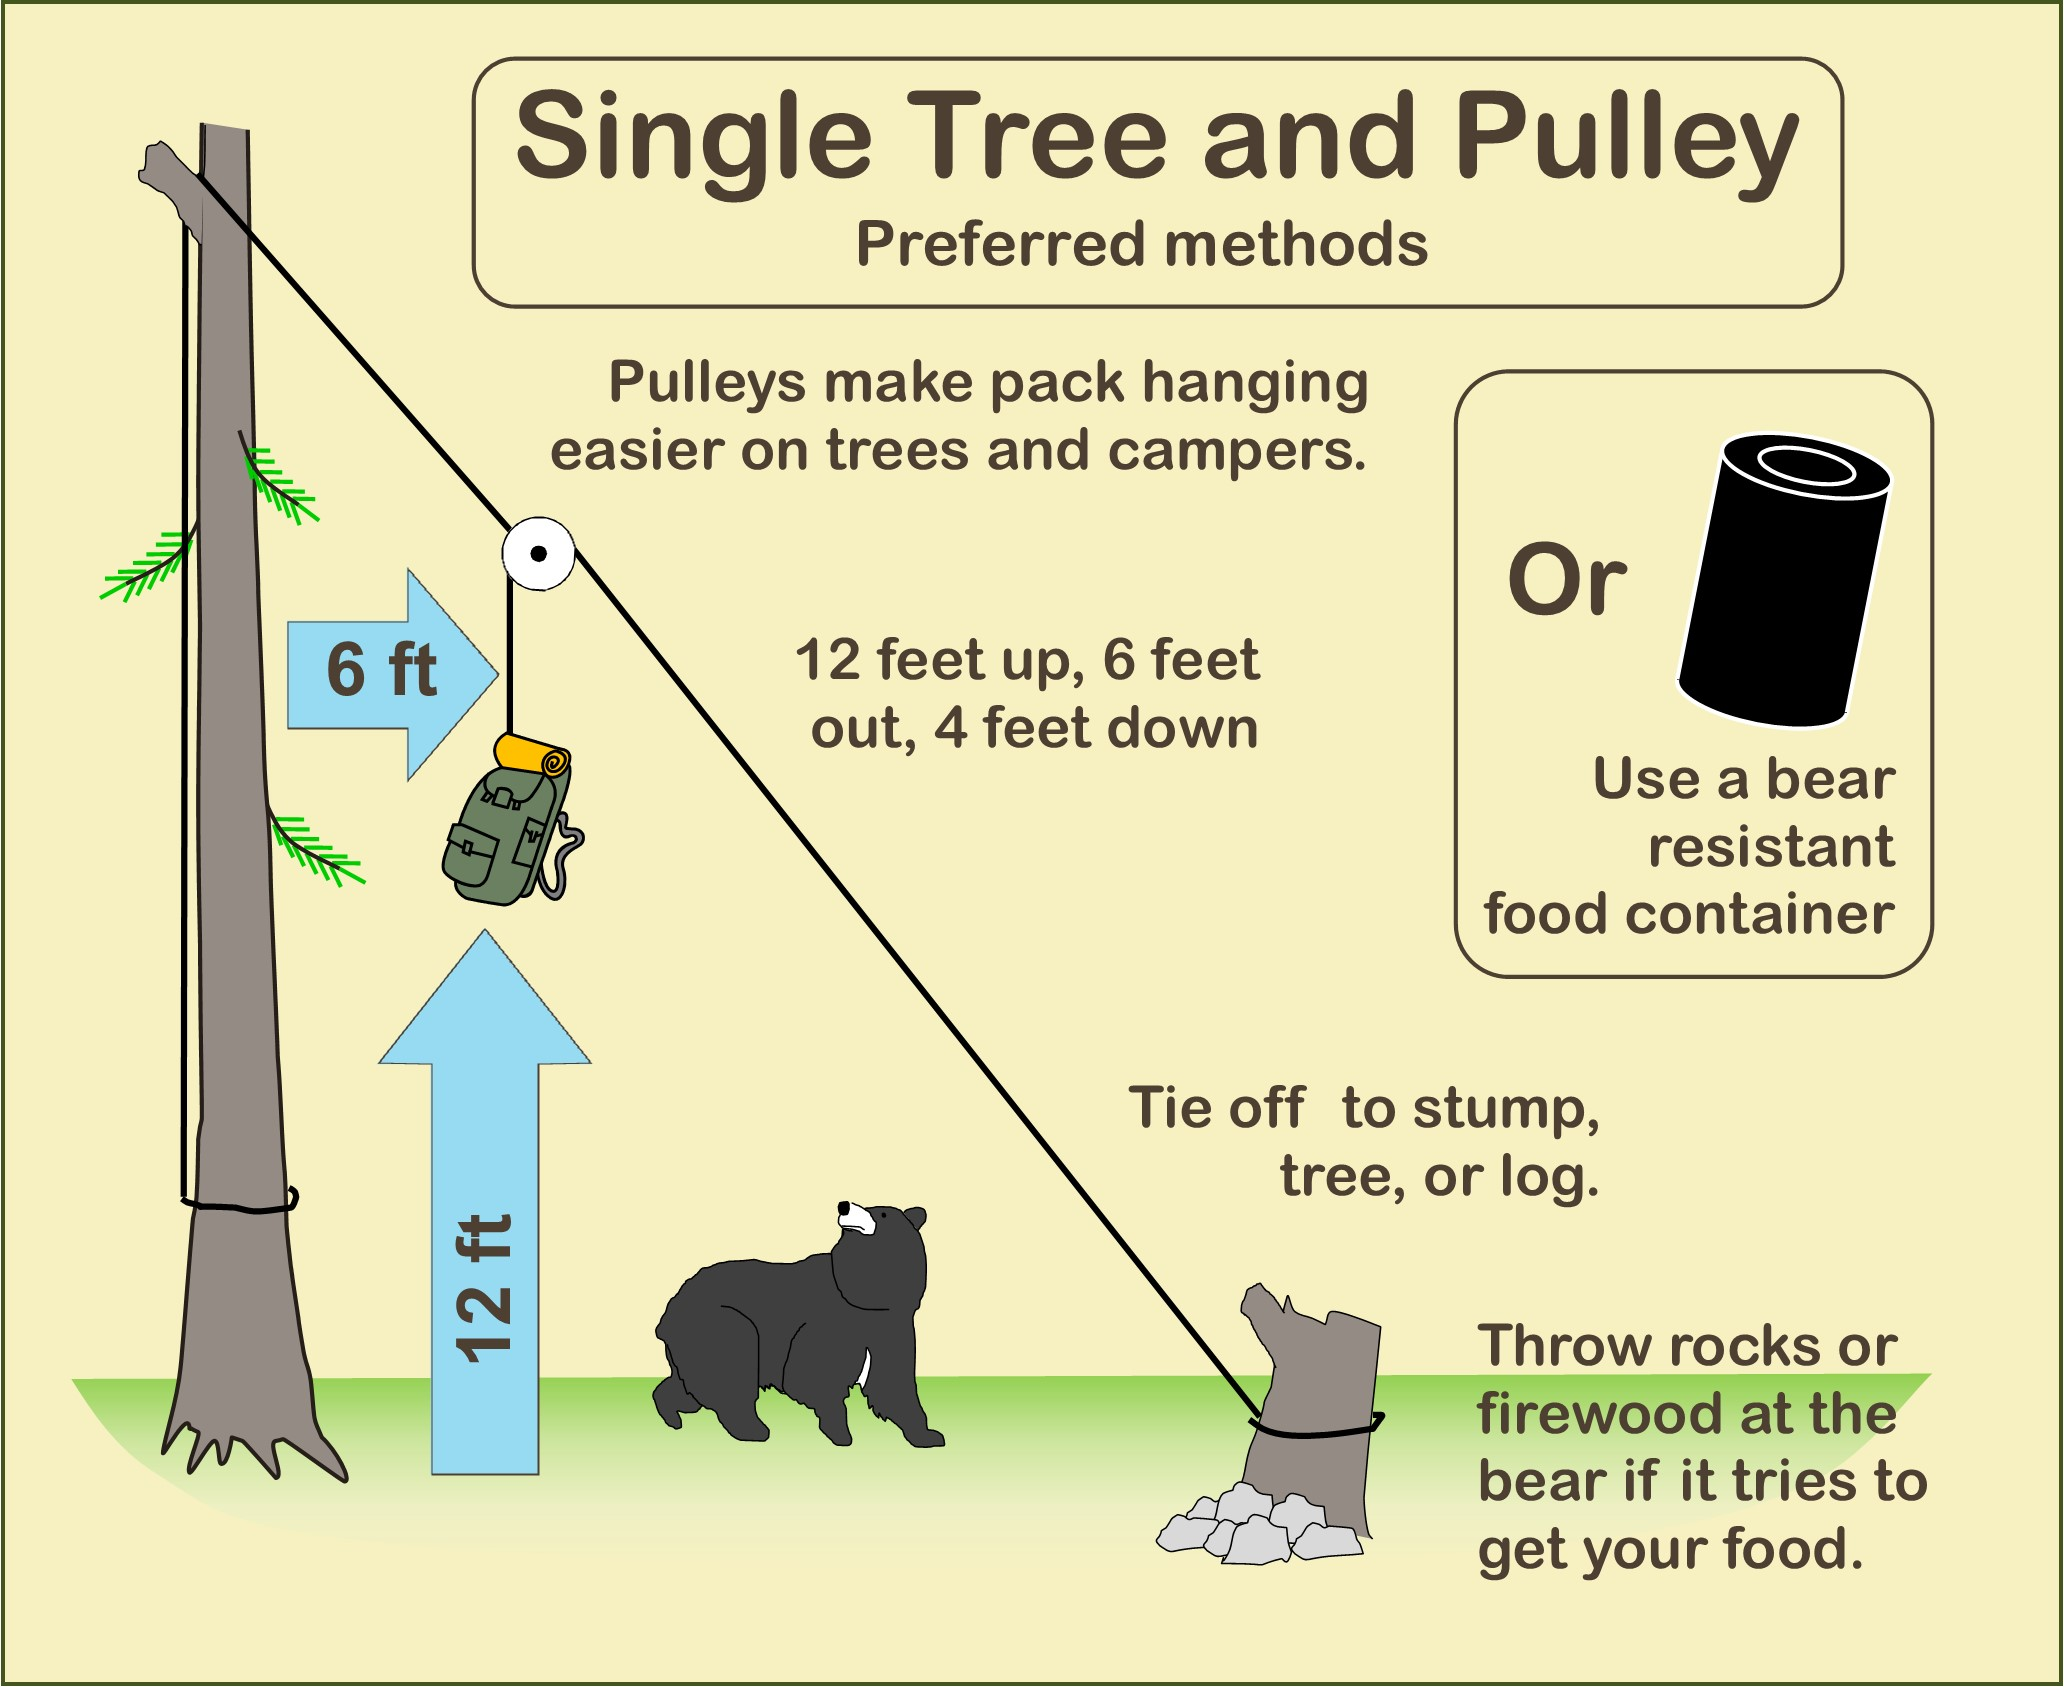 Hang a pack with a pulley over a branch so the pack is 12 ft up, 6 ft out, and 4 ft down.